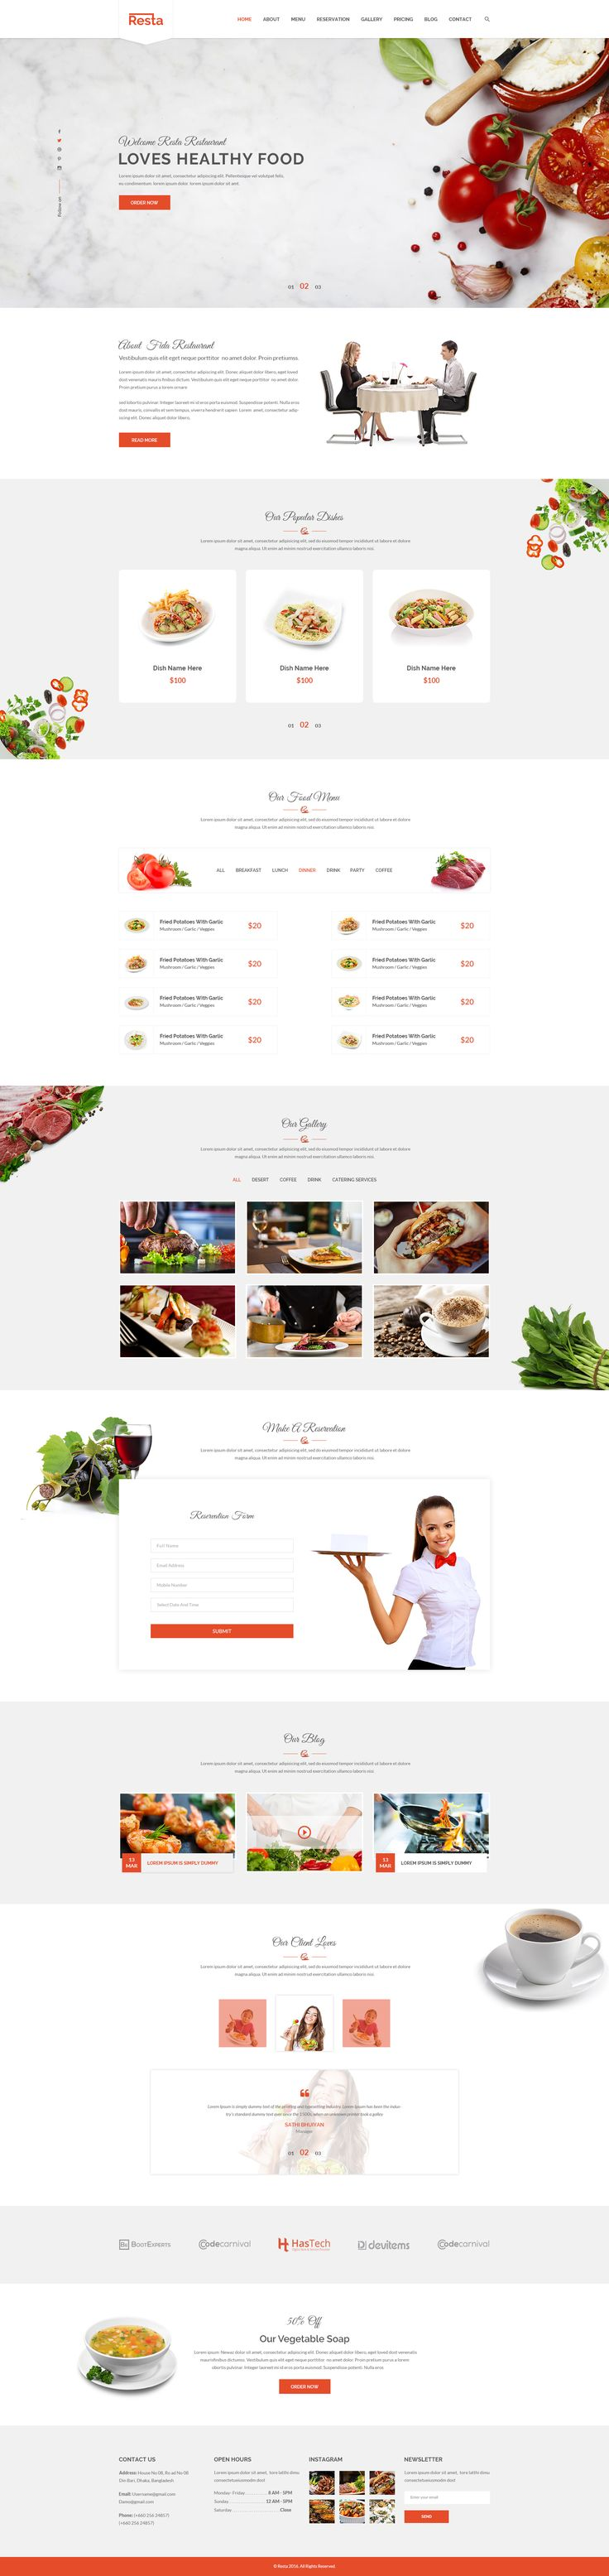 Resta - Restaurant PSD Template #psd #cooking #modern • Download ➝ https://themeforest.net/item/resta-restaurant-psd-template/18720225?ref=pxcr